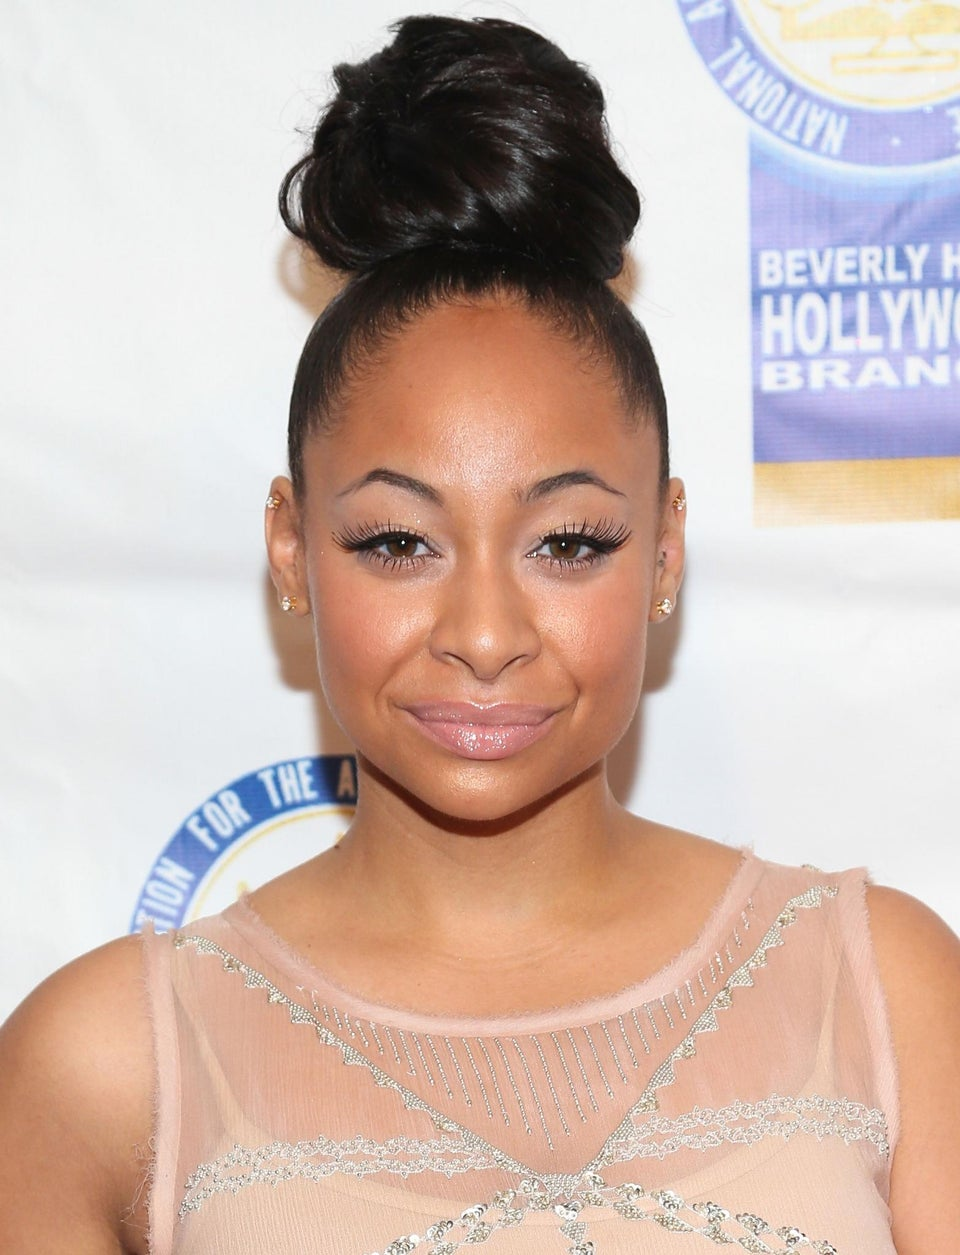 Raven-Symone Opens Up About Coming Out in New Season of 'It Got Better'